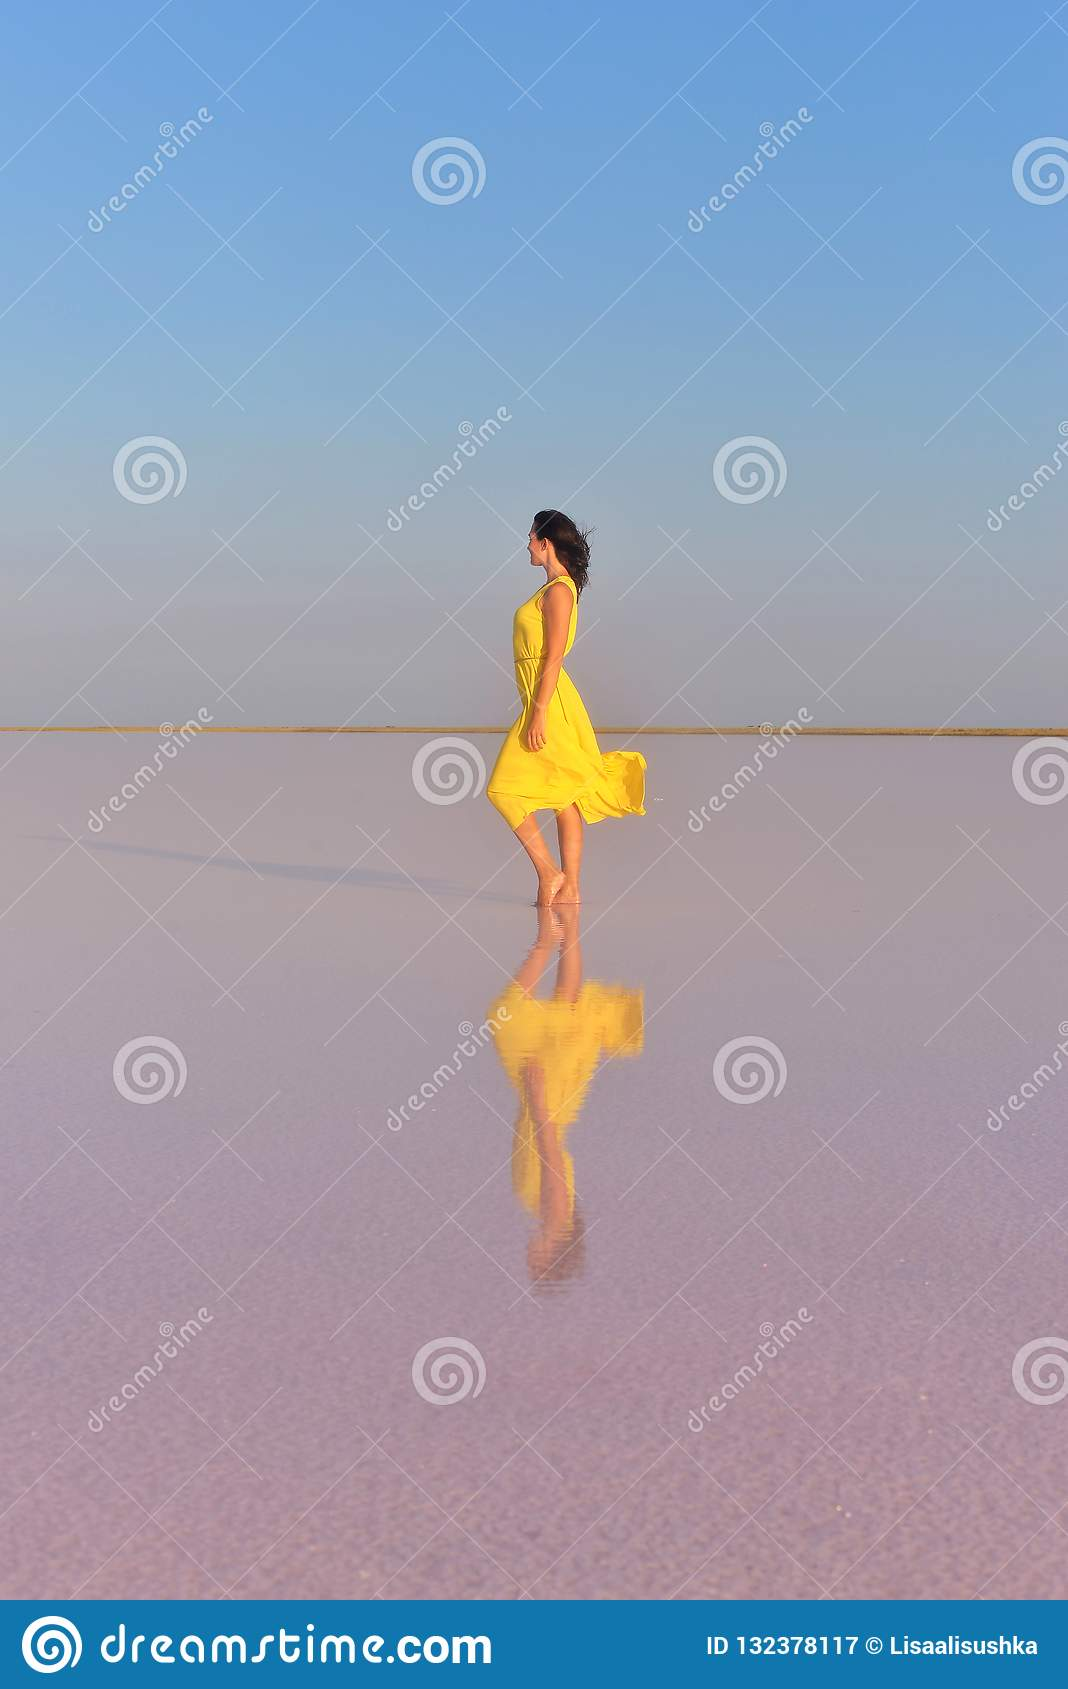 A young woman in the middle of a pink salt lake stands in a bright yellow dress and meets the sunset.